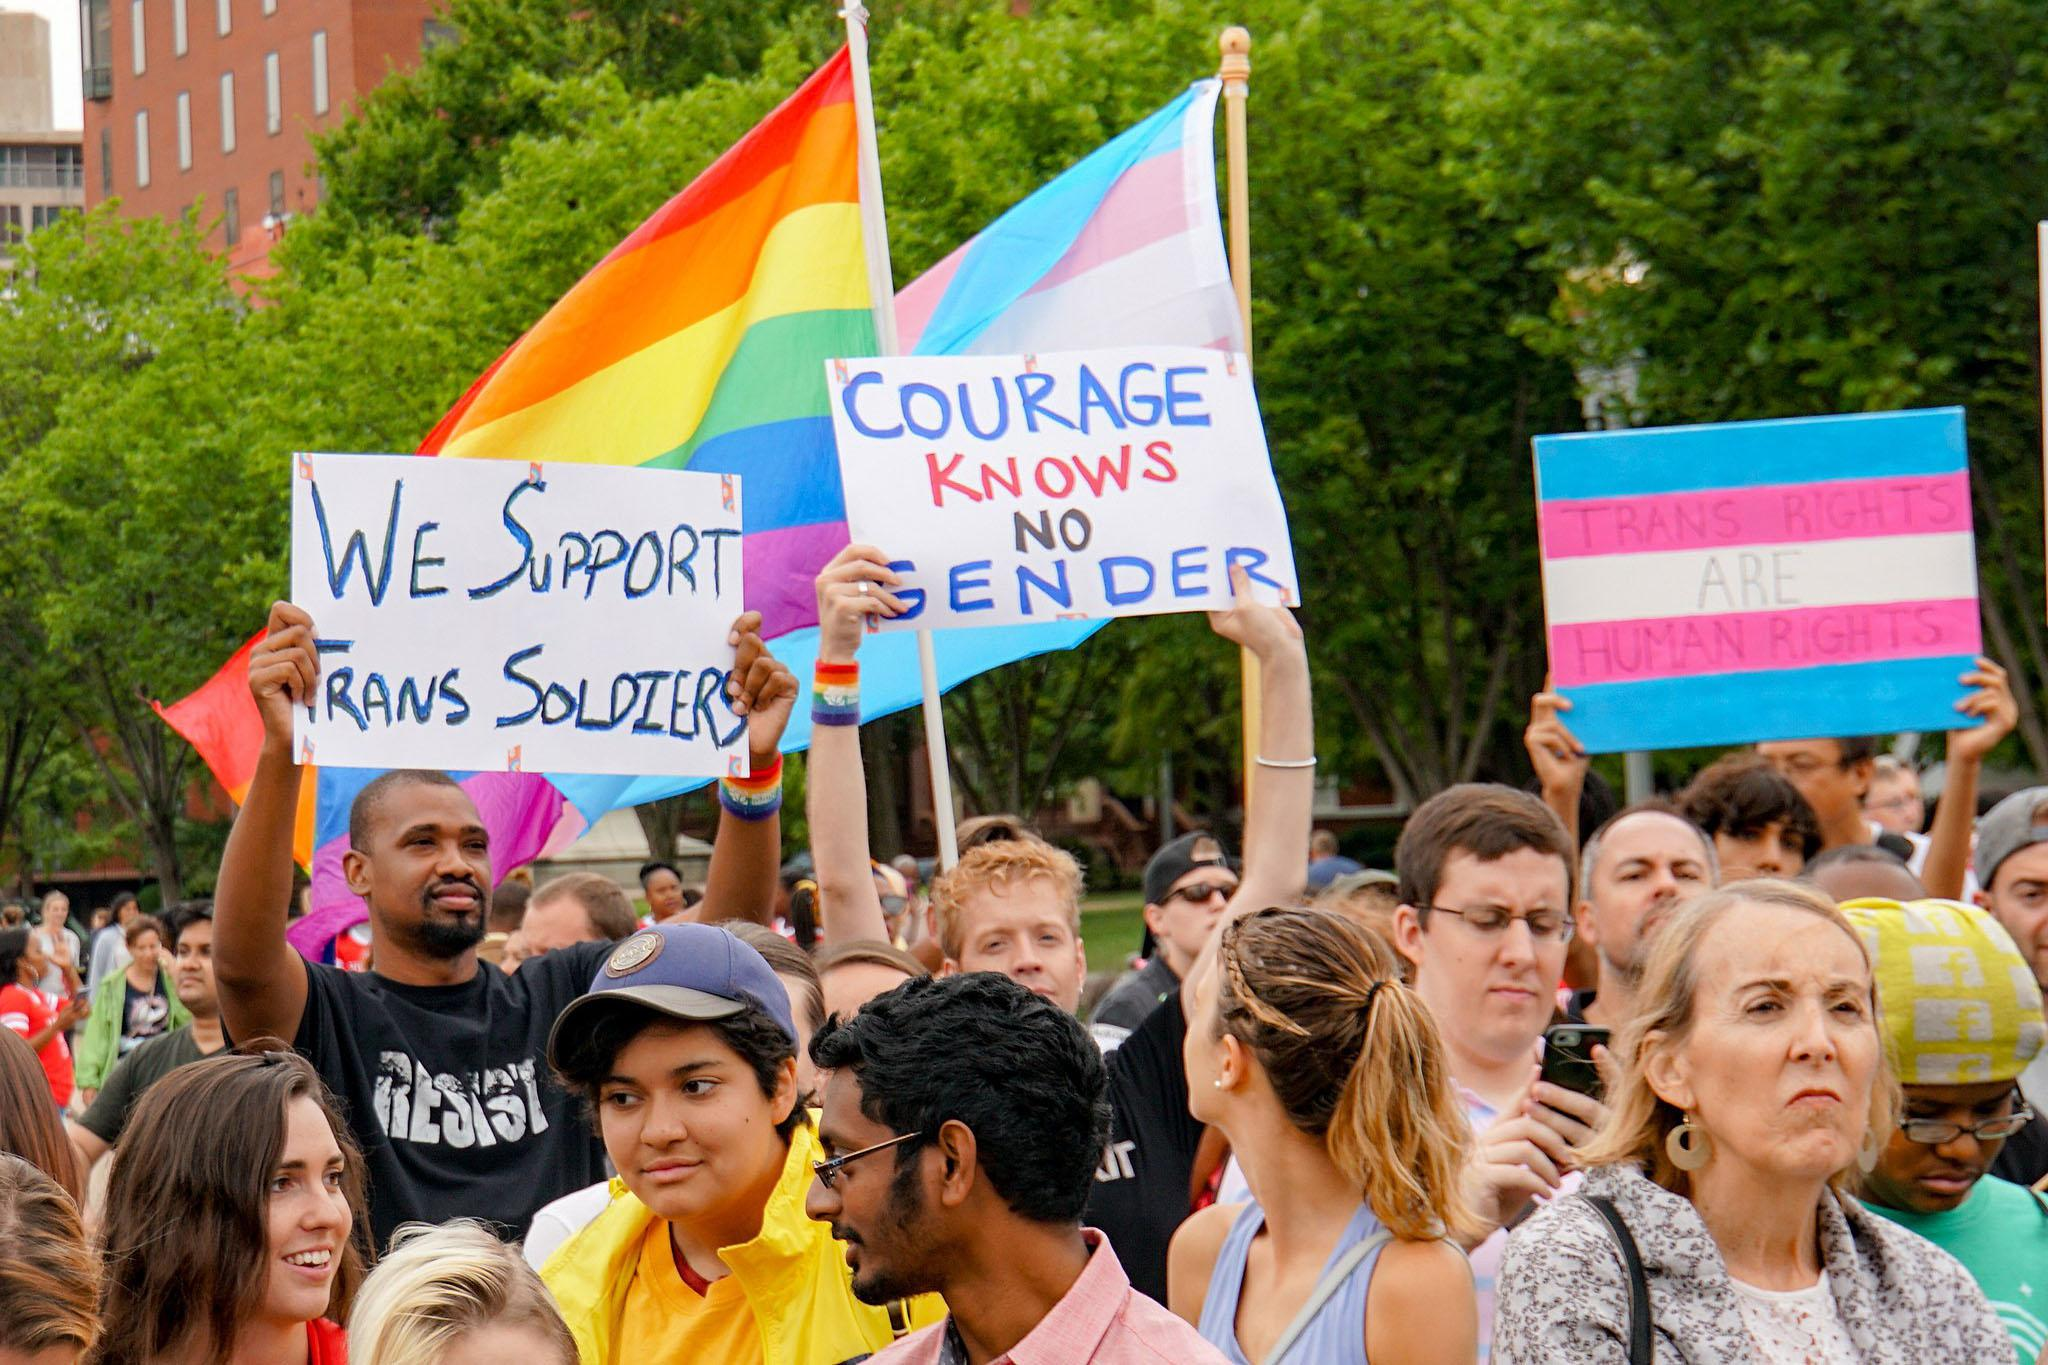 Caption: Protesters opposed to the Trump Administration's military transgender ban march in Washington, D.C. in a July 2107 demonstration., Credit: Ted Eytan / Wikimedia